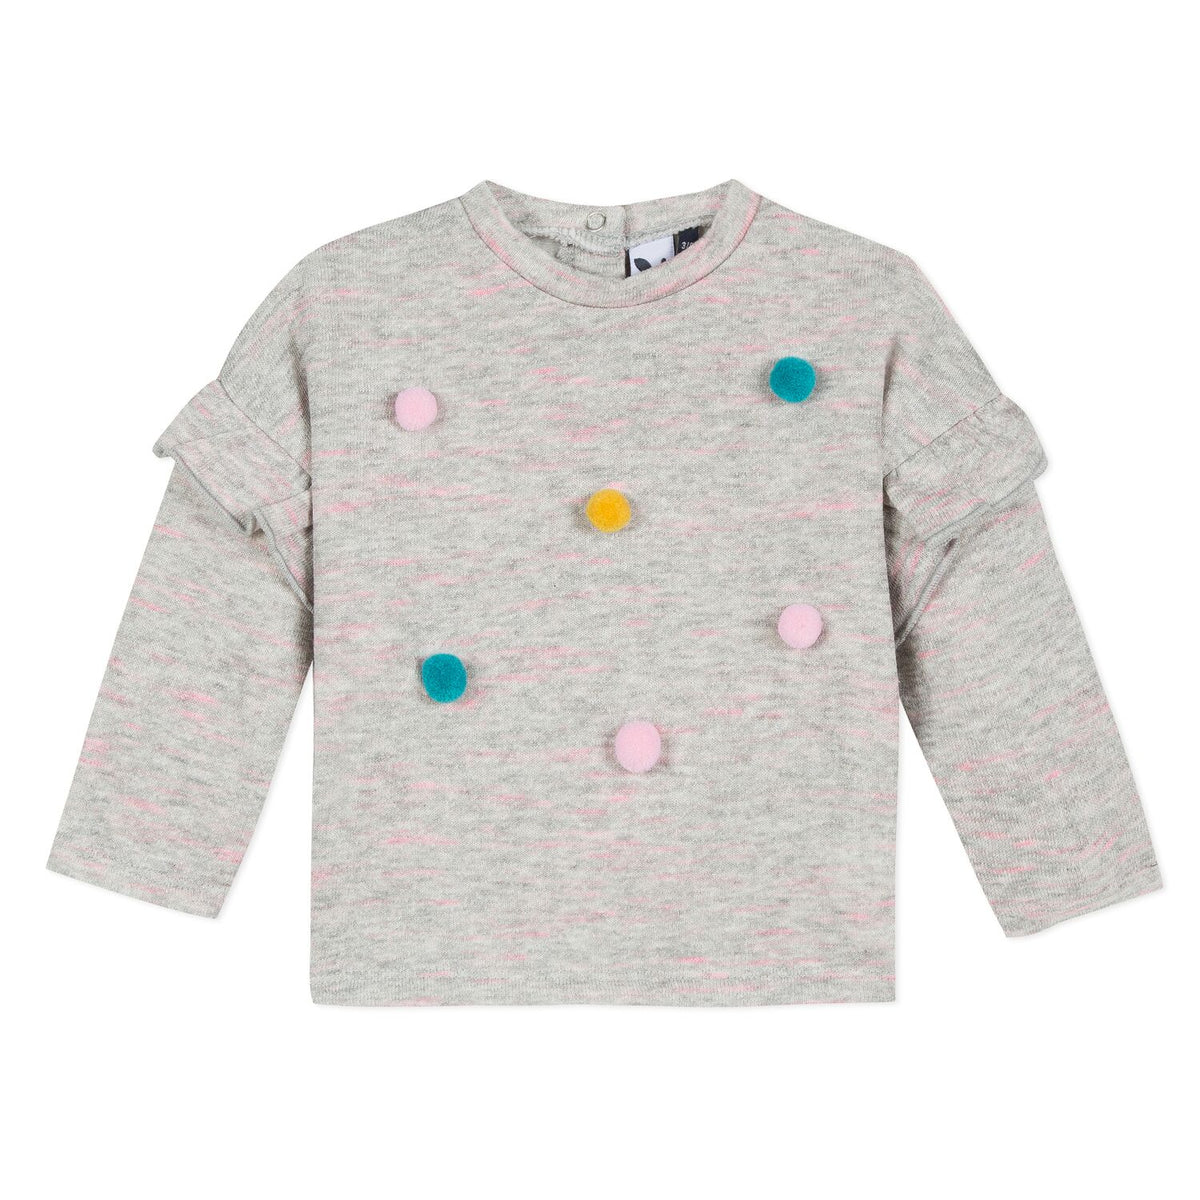 Girls Pom Pom Sweatshirt